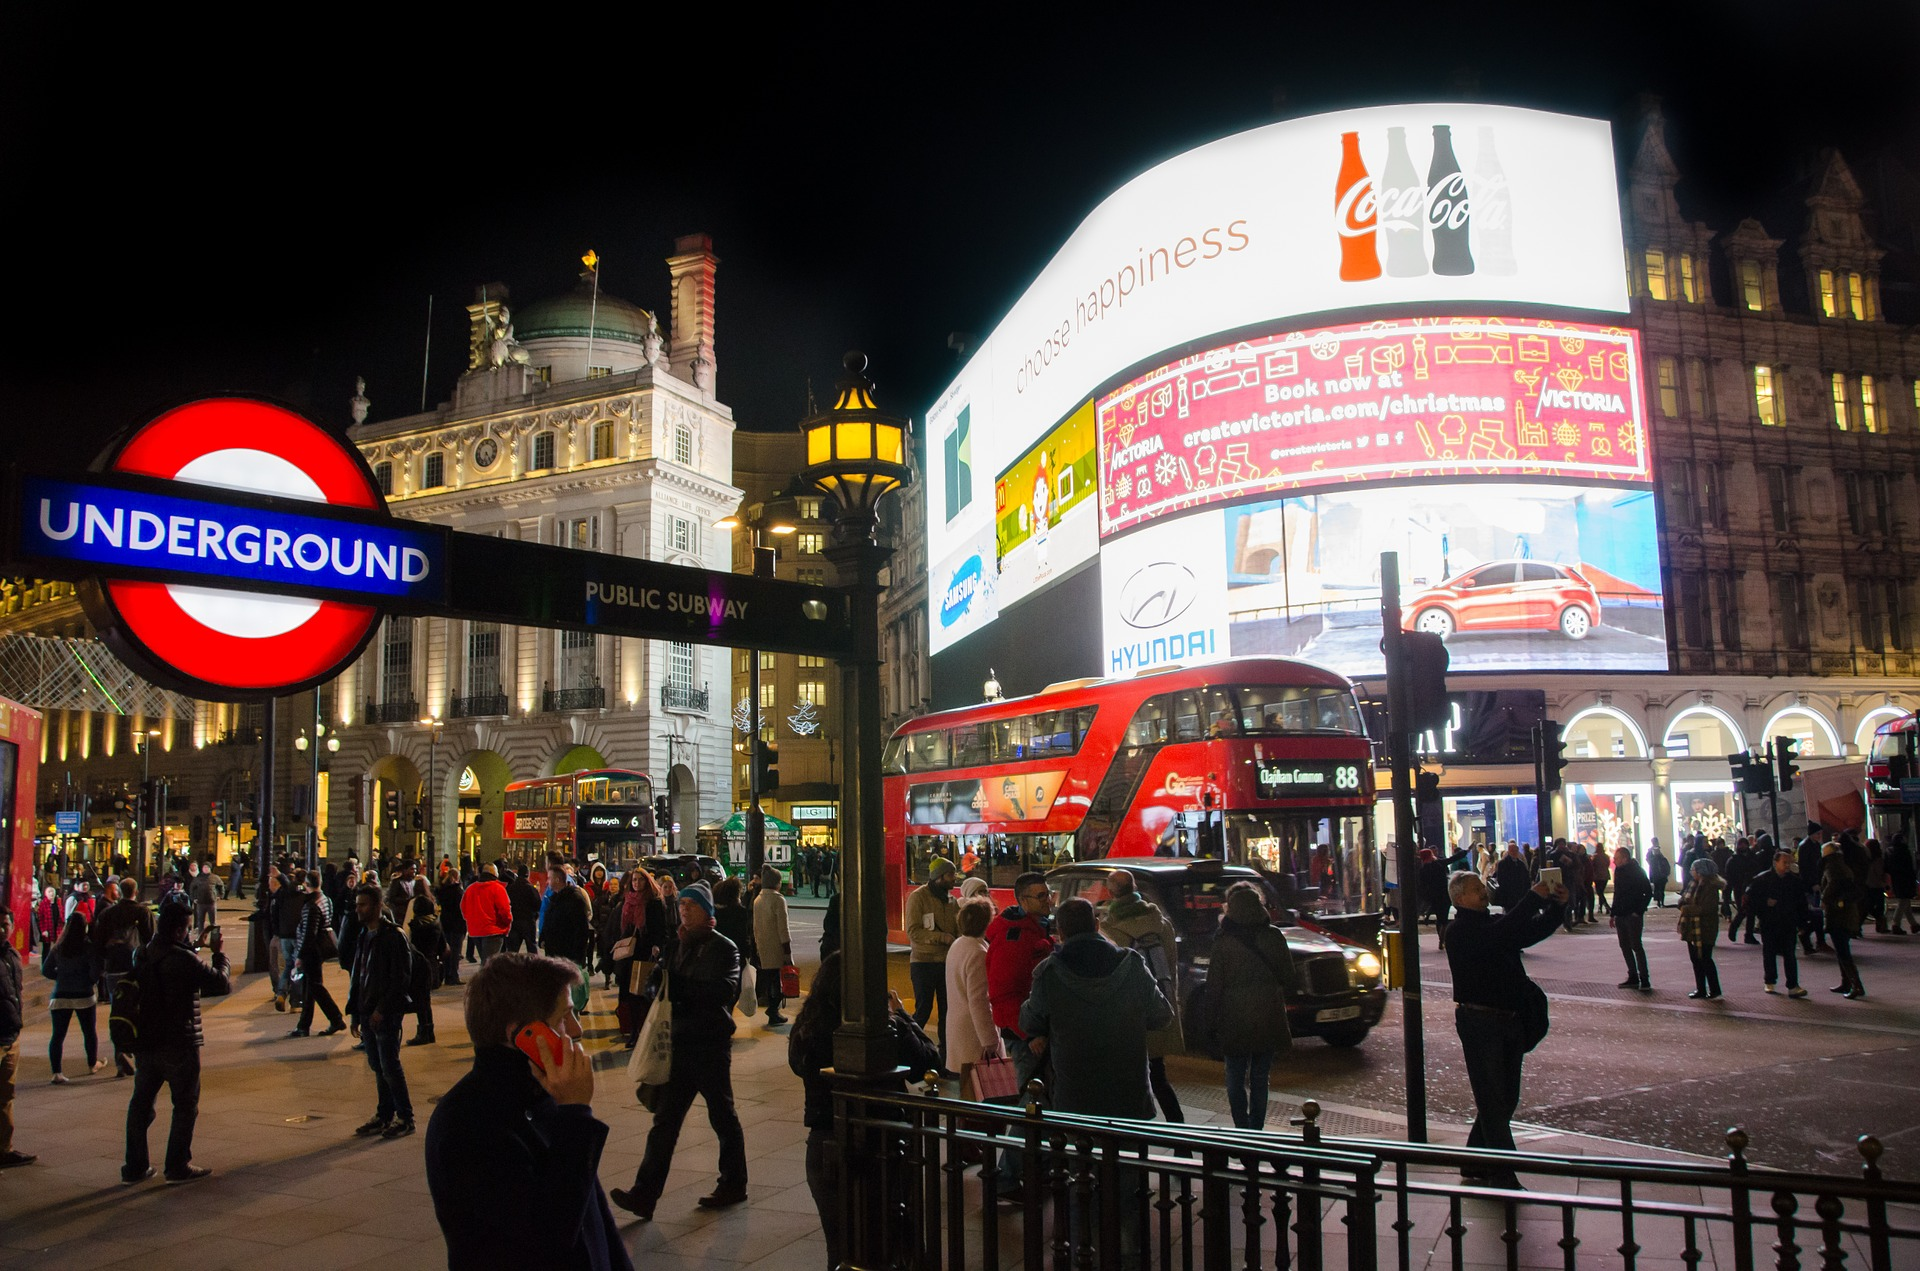 Visit Picadilly Circus at Night - The Best Free Things to Do in London - Free Museums, Free Entertainment and Free Tourist Attractions in London England